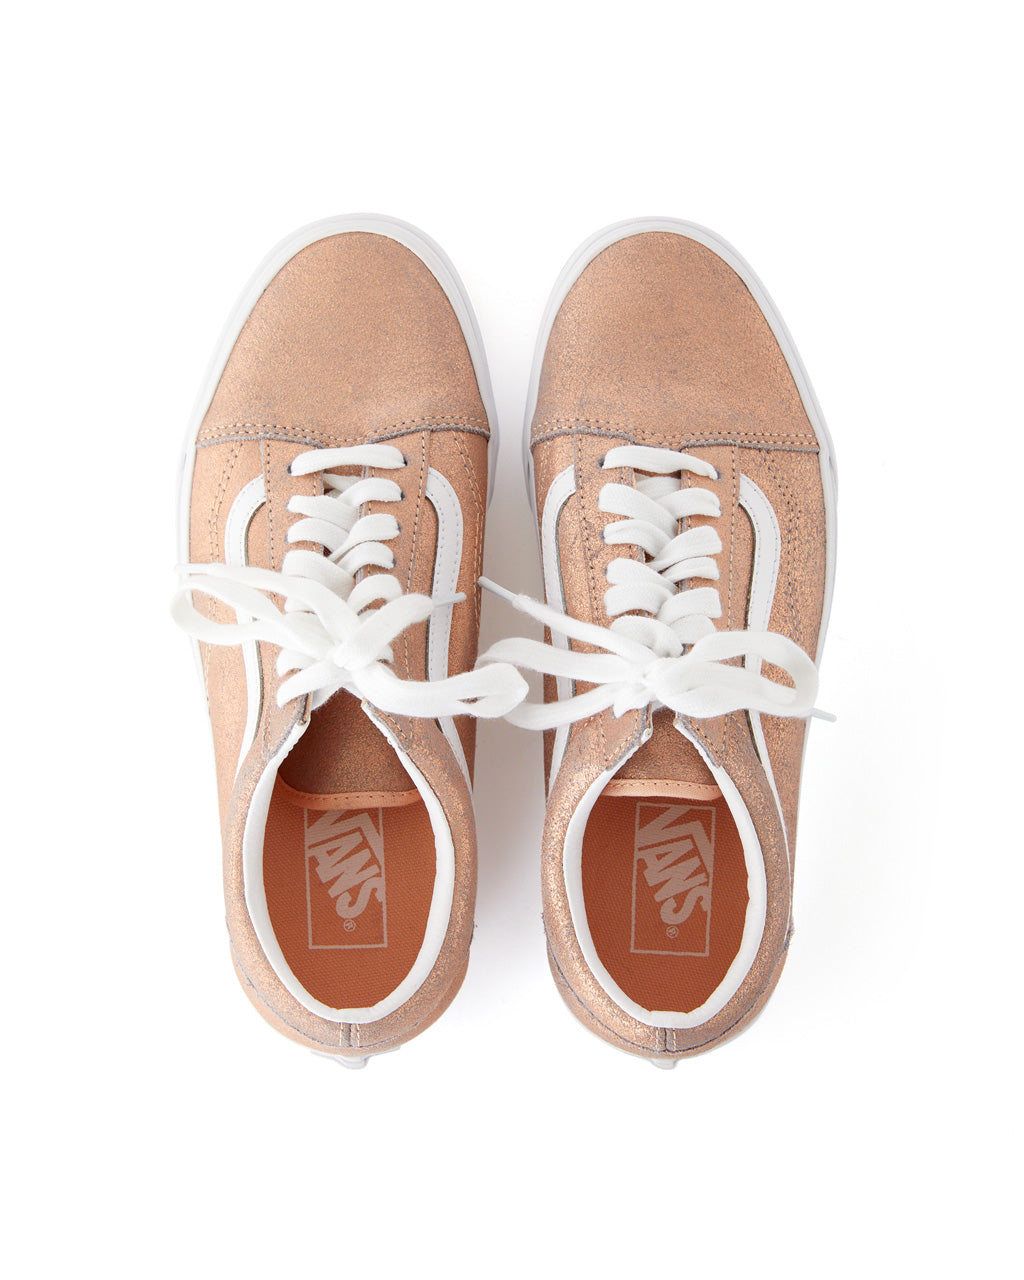 Vans Metallic Leather Classic Slip On in Rose Gold in 2020